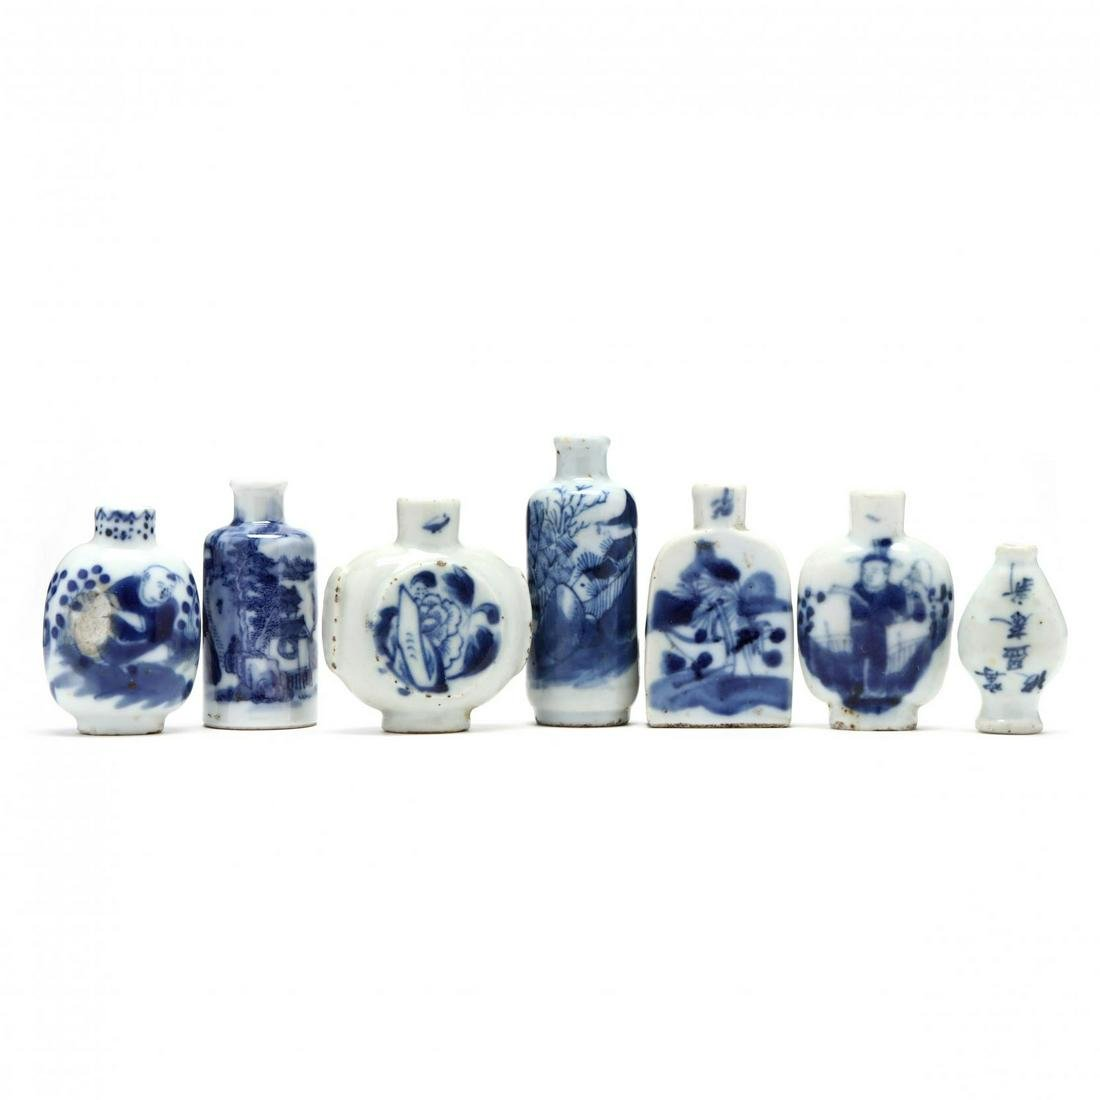 A Group of Seven Chinese Blue and White Porcelain